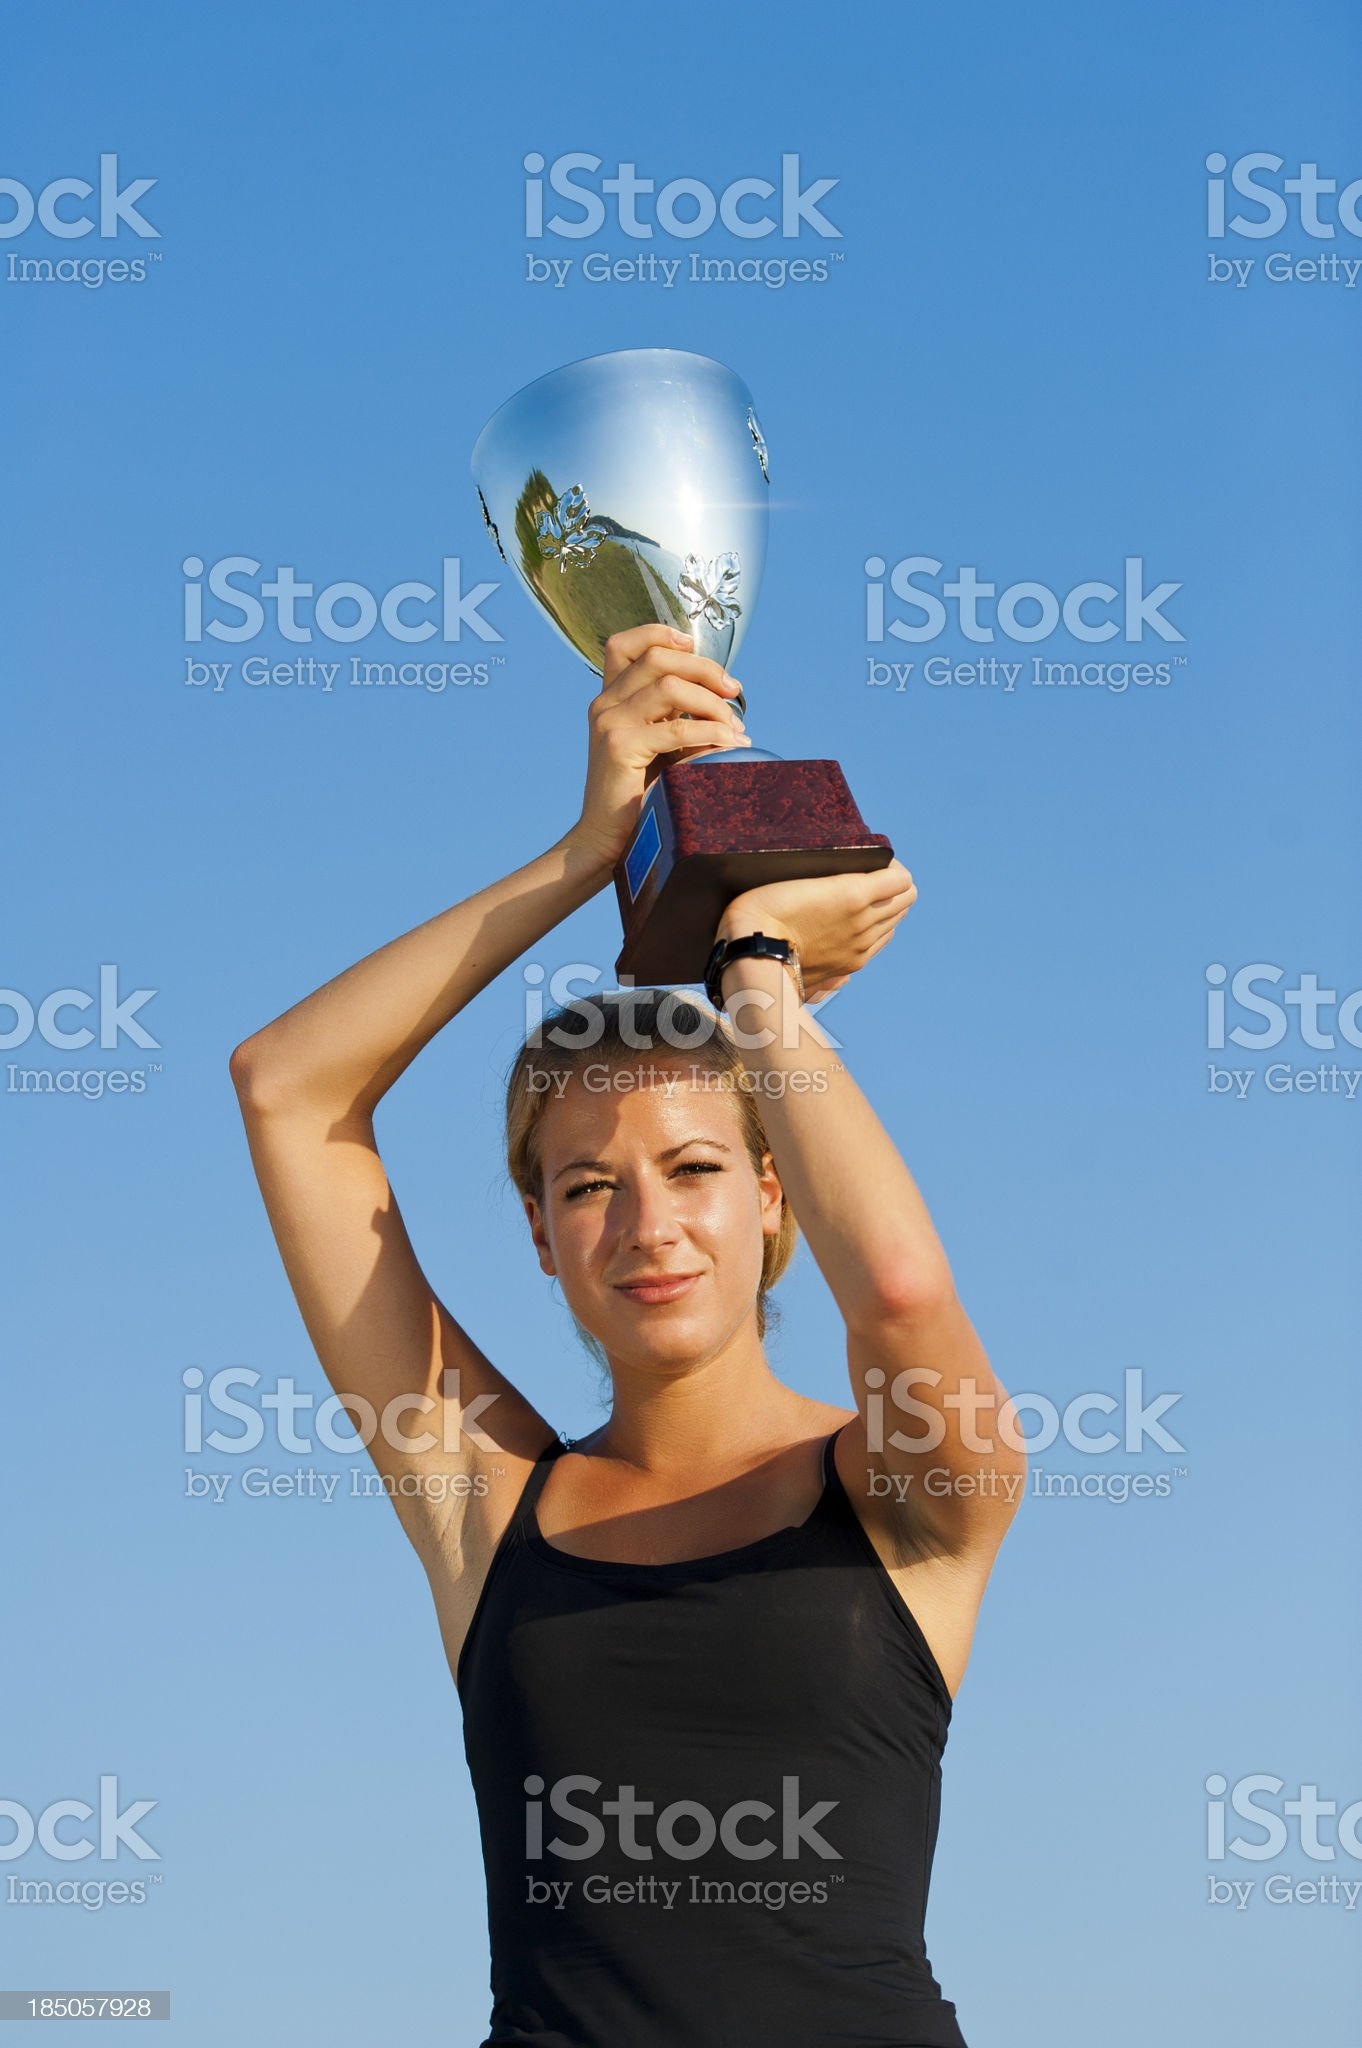 Raising trophy cup royalty-free stock photo